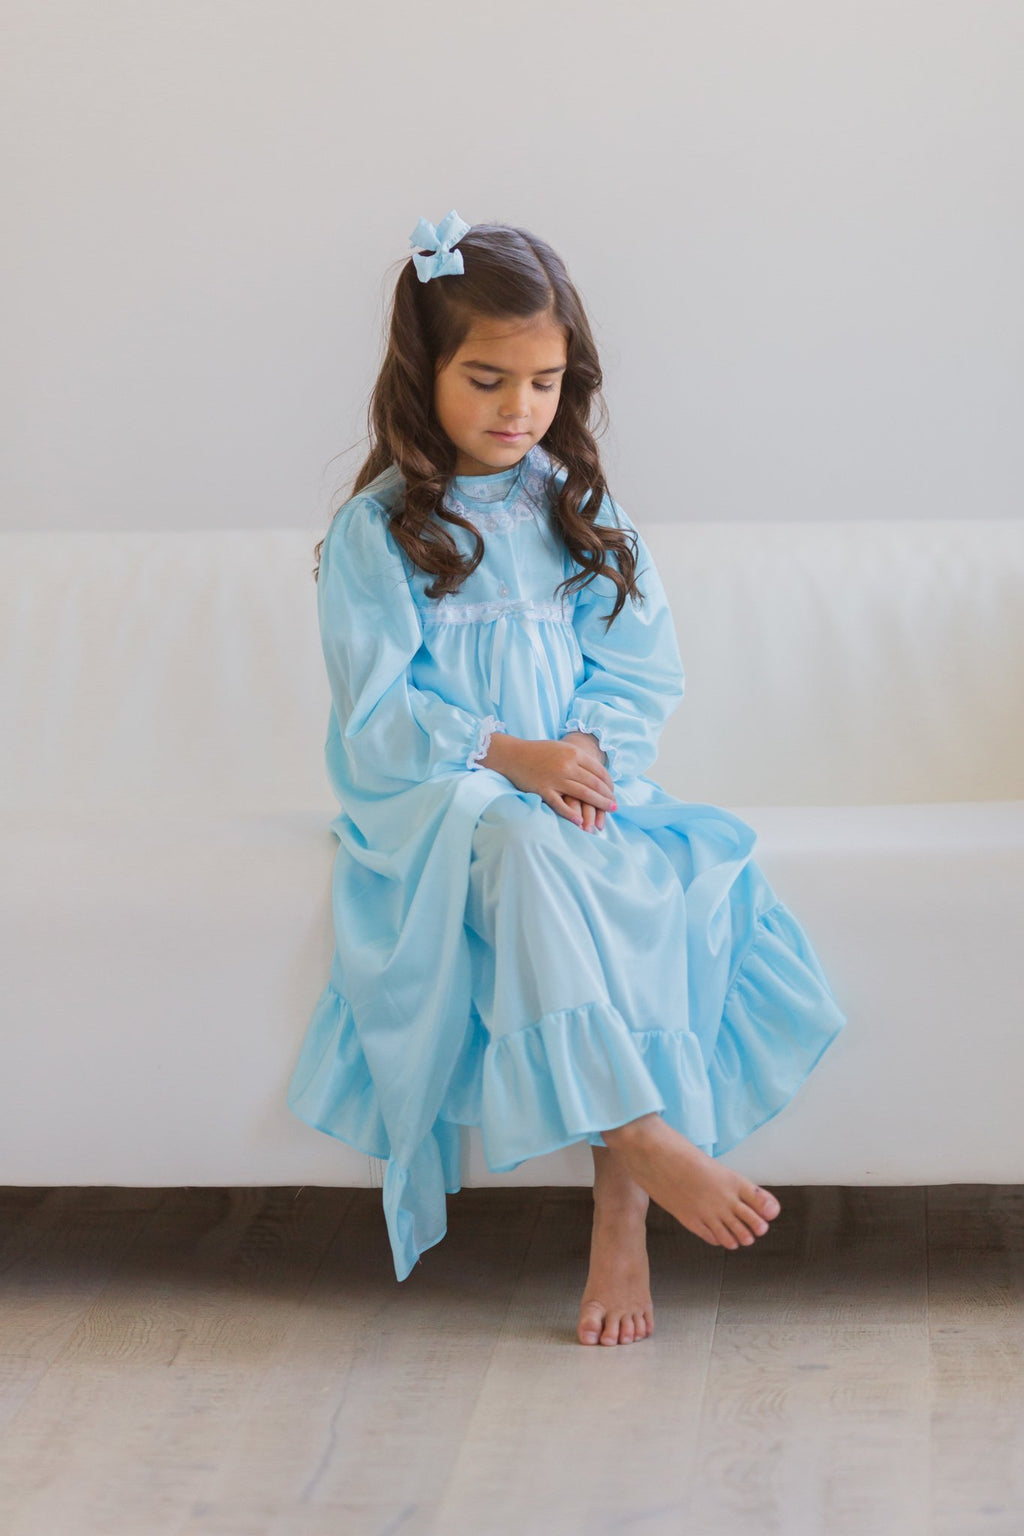 Clara Nightgown Peignoir Set in Blue